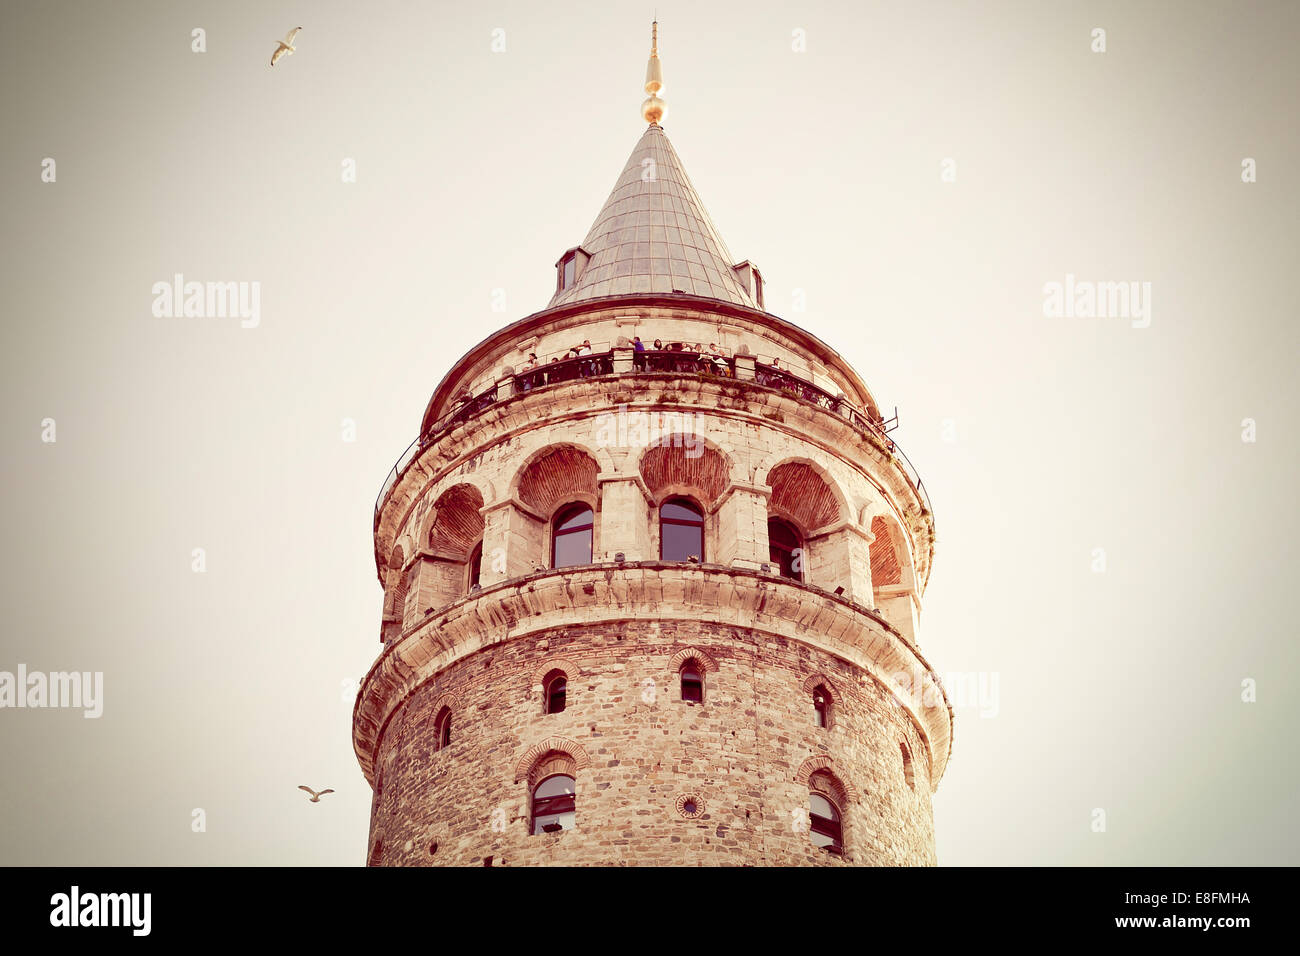 La Turquie, Istanbul, Low angle view of Tour de Galata Photo Stock